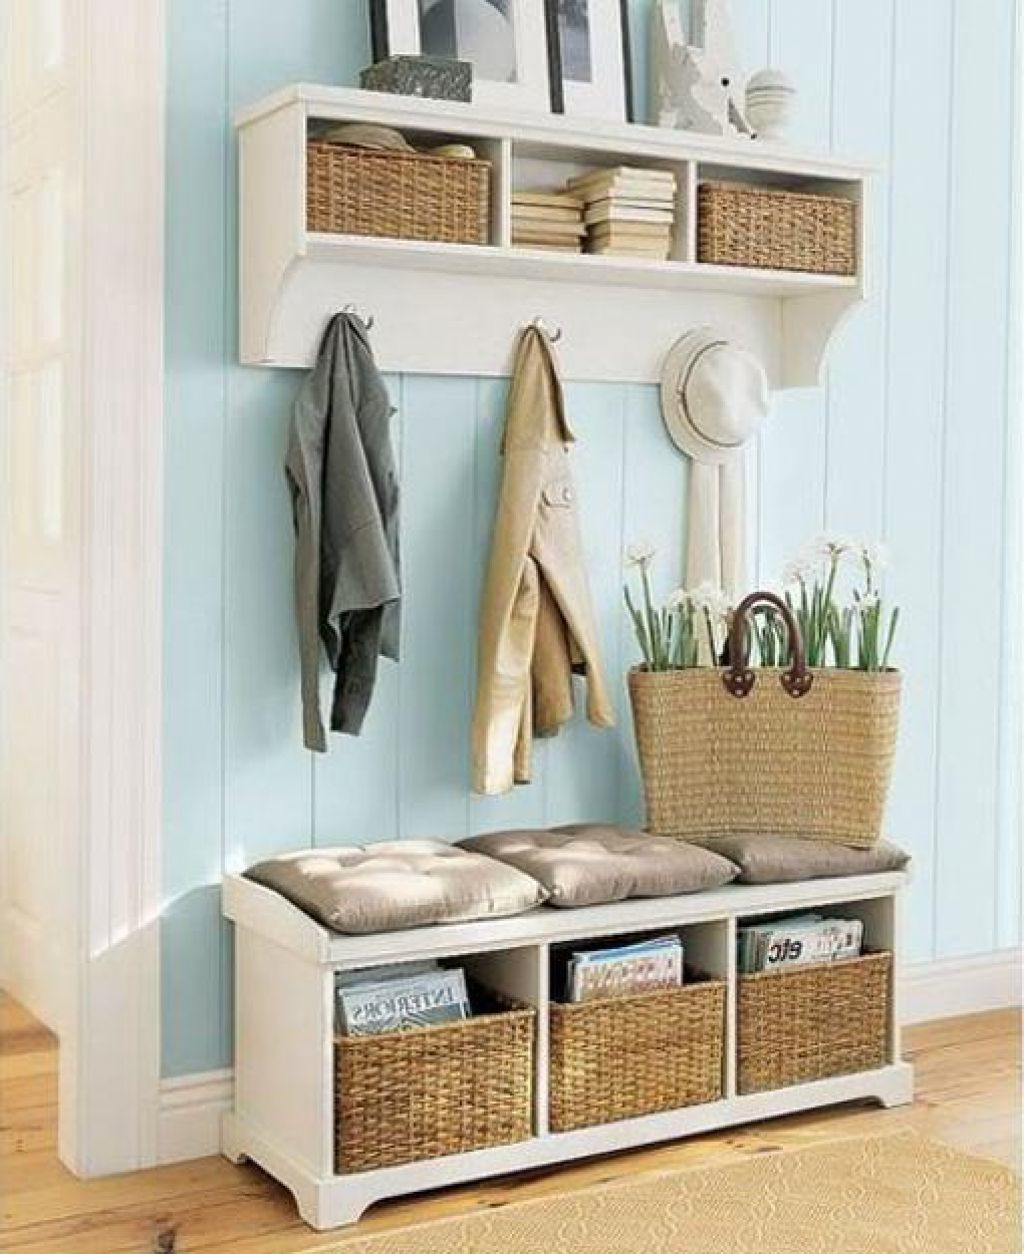 entranceway furniture ideas. Ideas Entryway Furniture For Small Spaces Insero Co Narrow Bench With Storage Entranceway